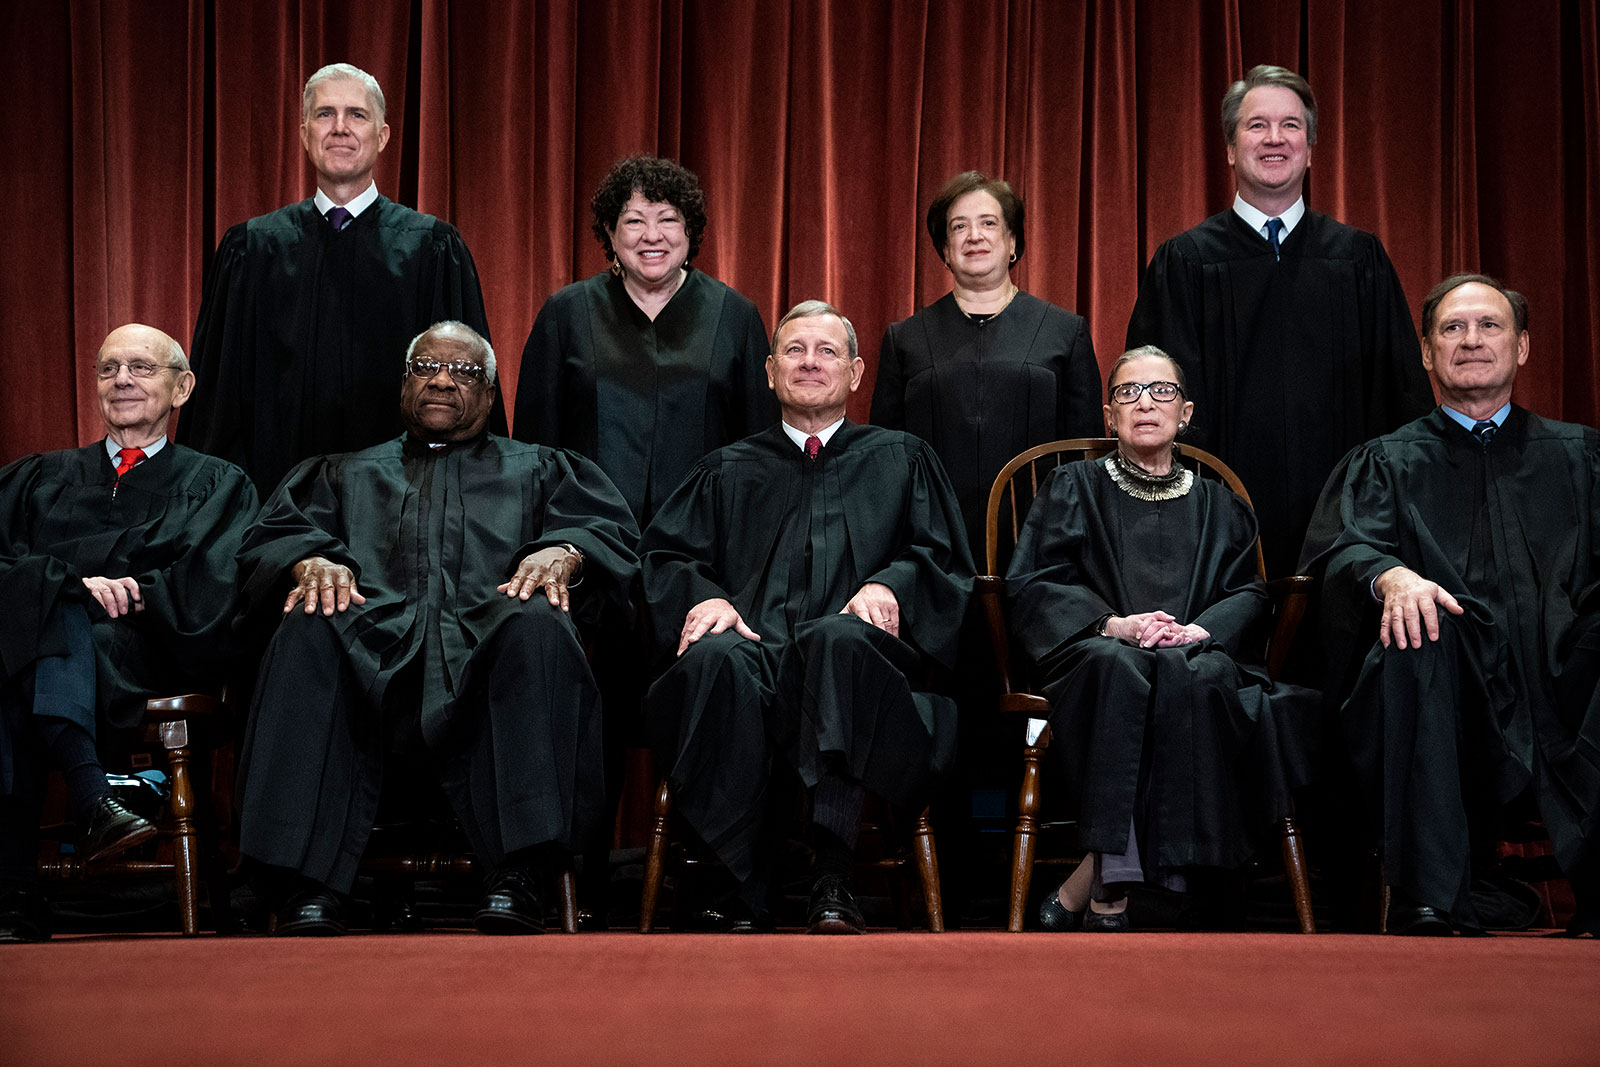 Justices of the US Supreme Court sit for their official group photo in 2018. From left, Justice Stephen G. Breyer, Justice Neil M. Gorsuch, Justice Clarence Thomas, Justice Sonia Sotomayor, Chief Justice John G. Roberts, Jr., Justice Elena Kagan, Justice Ruth Bader Ginsburg, Justice Brett M. Kavanaugh and Justice Samuel A. Alito.